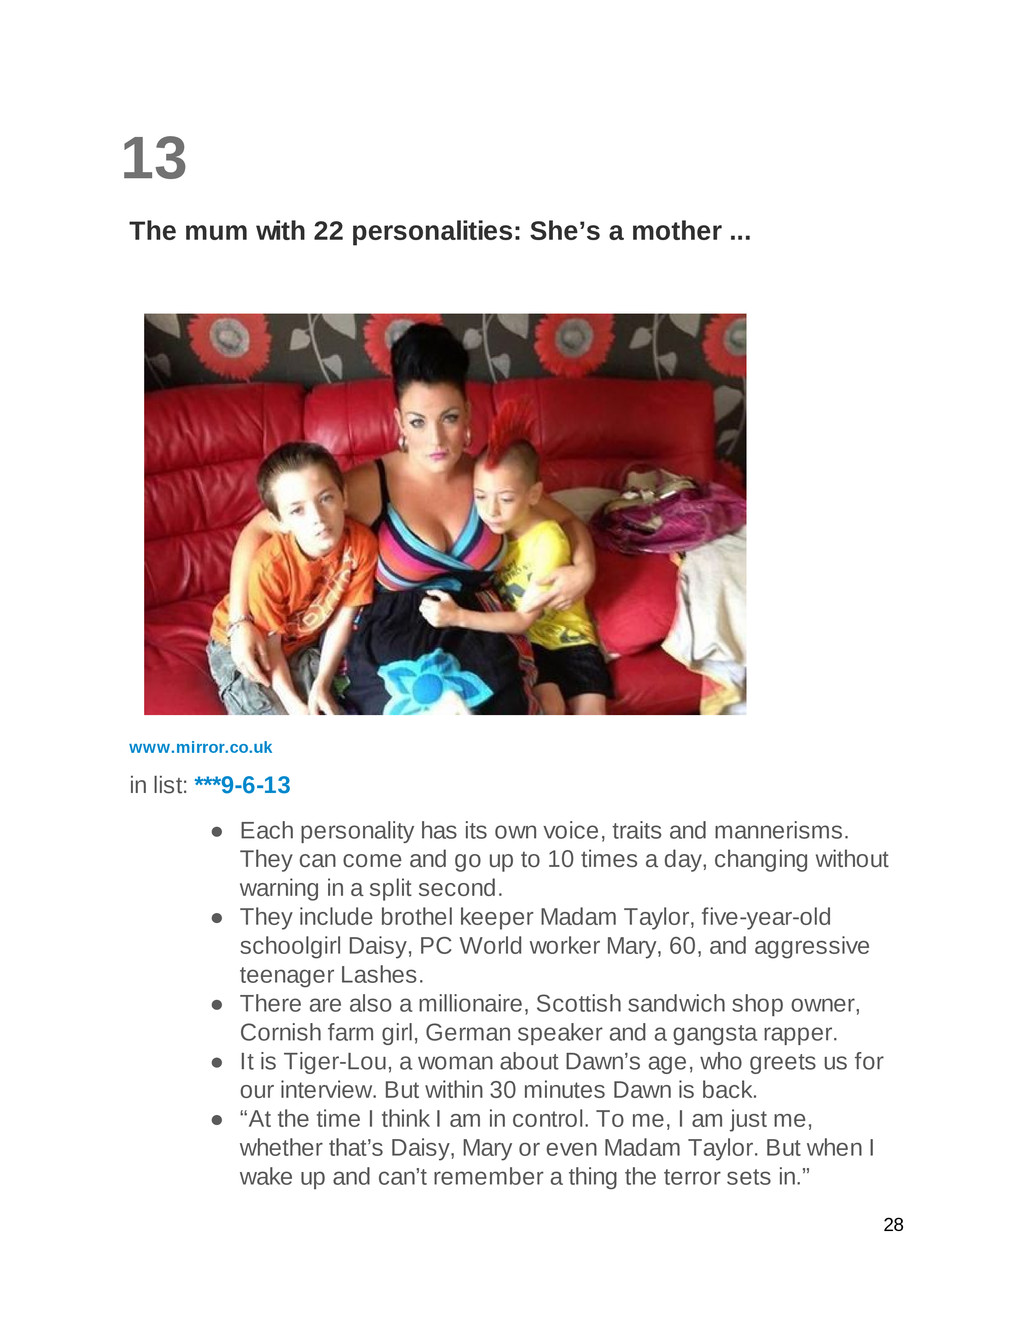 13 The mum with 22 personalities: She's a mothe...